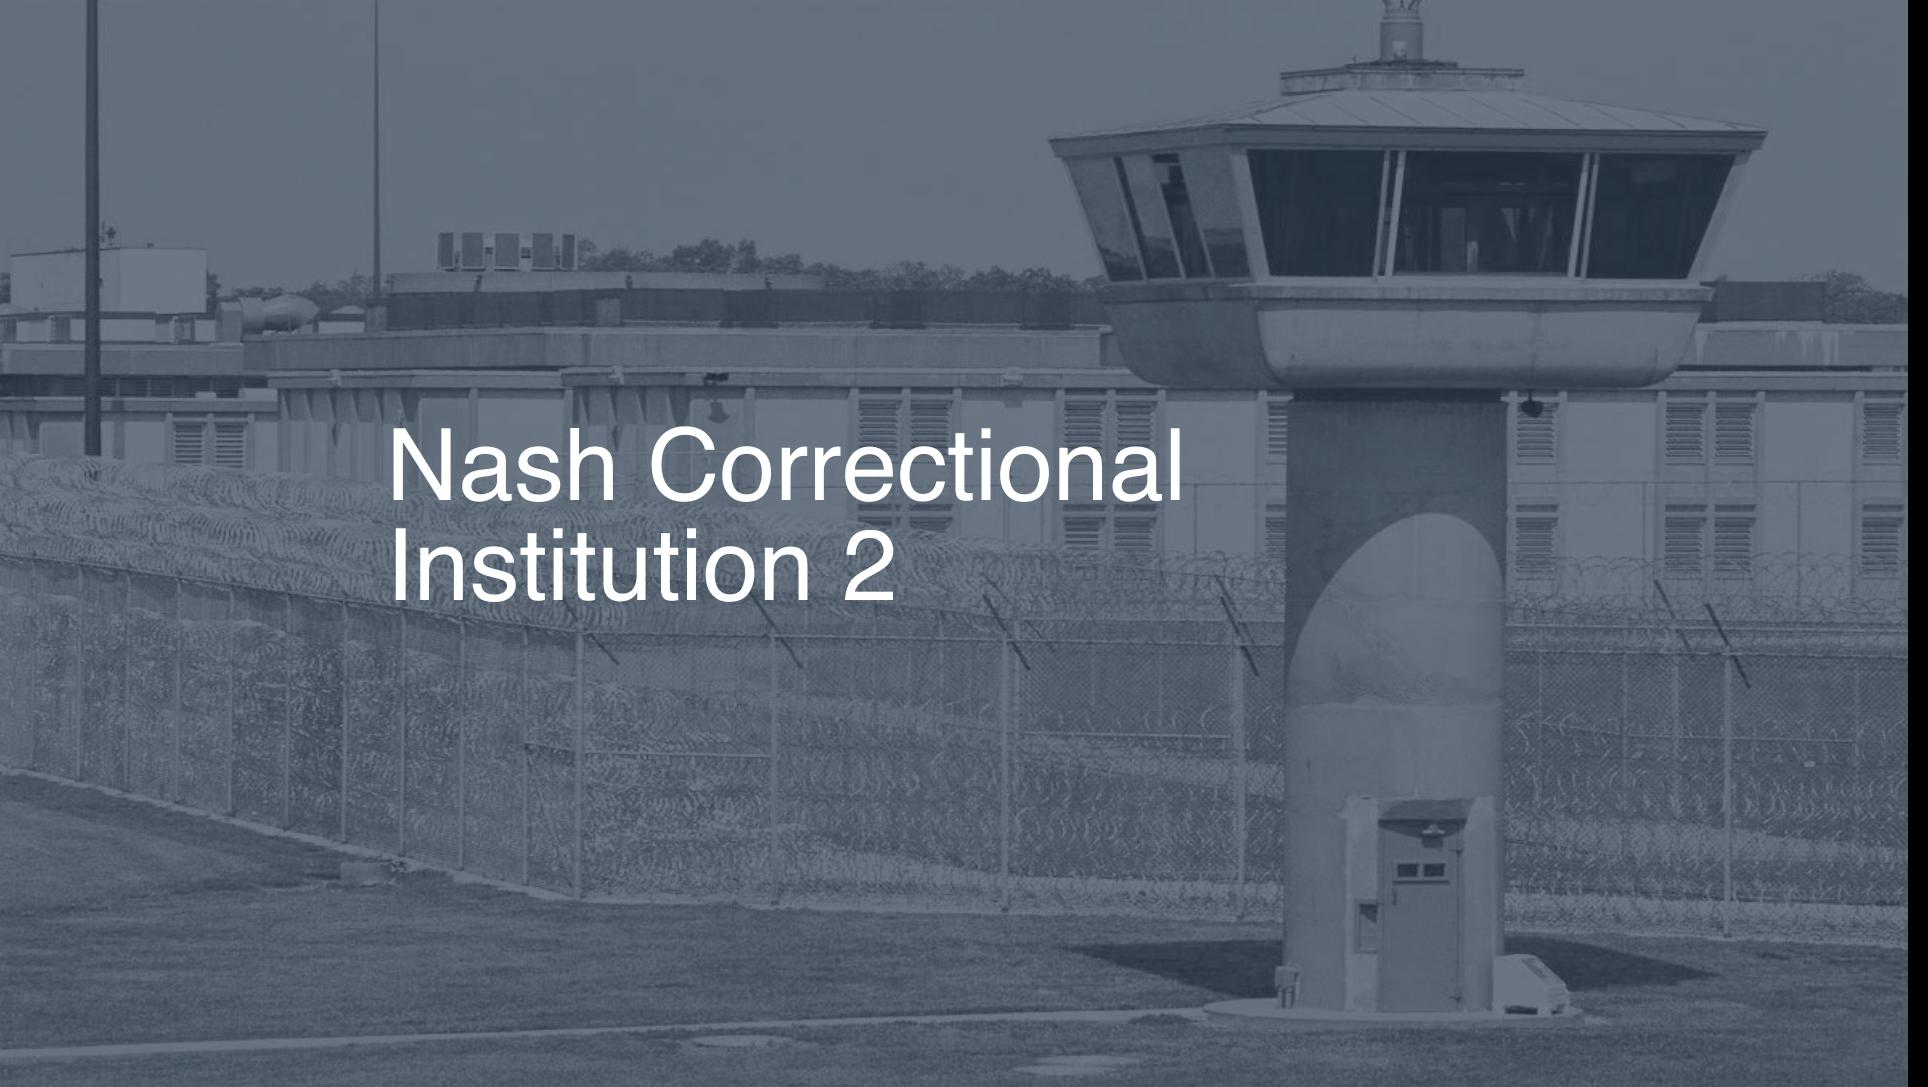 Nash Correctional Institution correctional facility picture